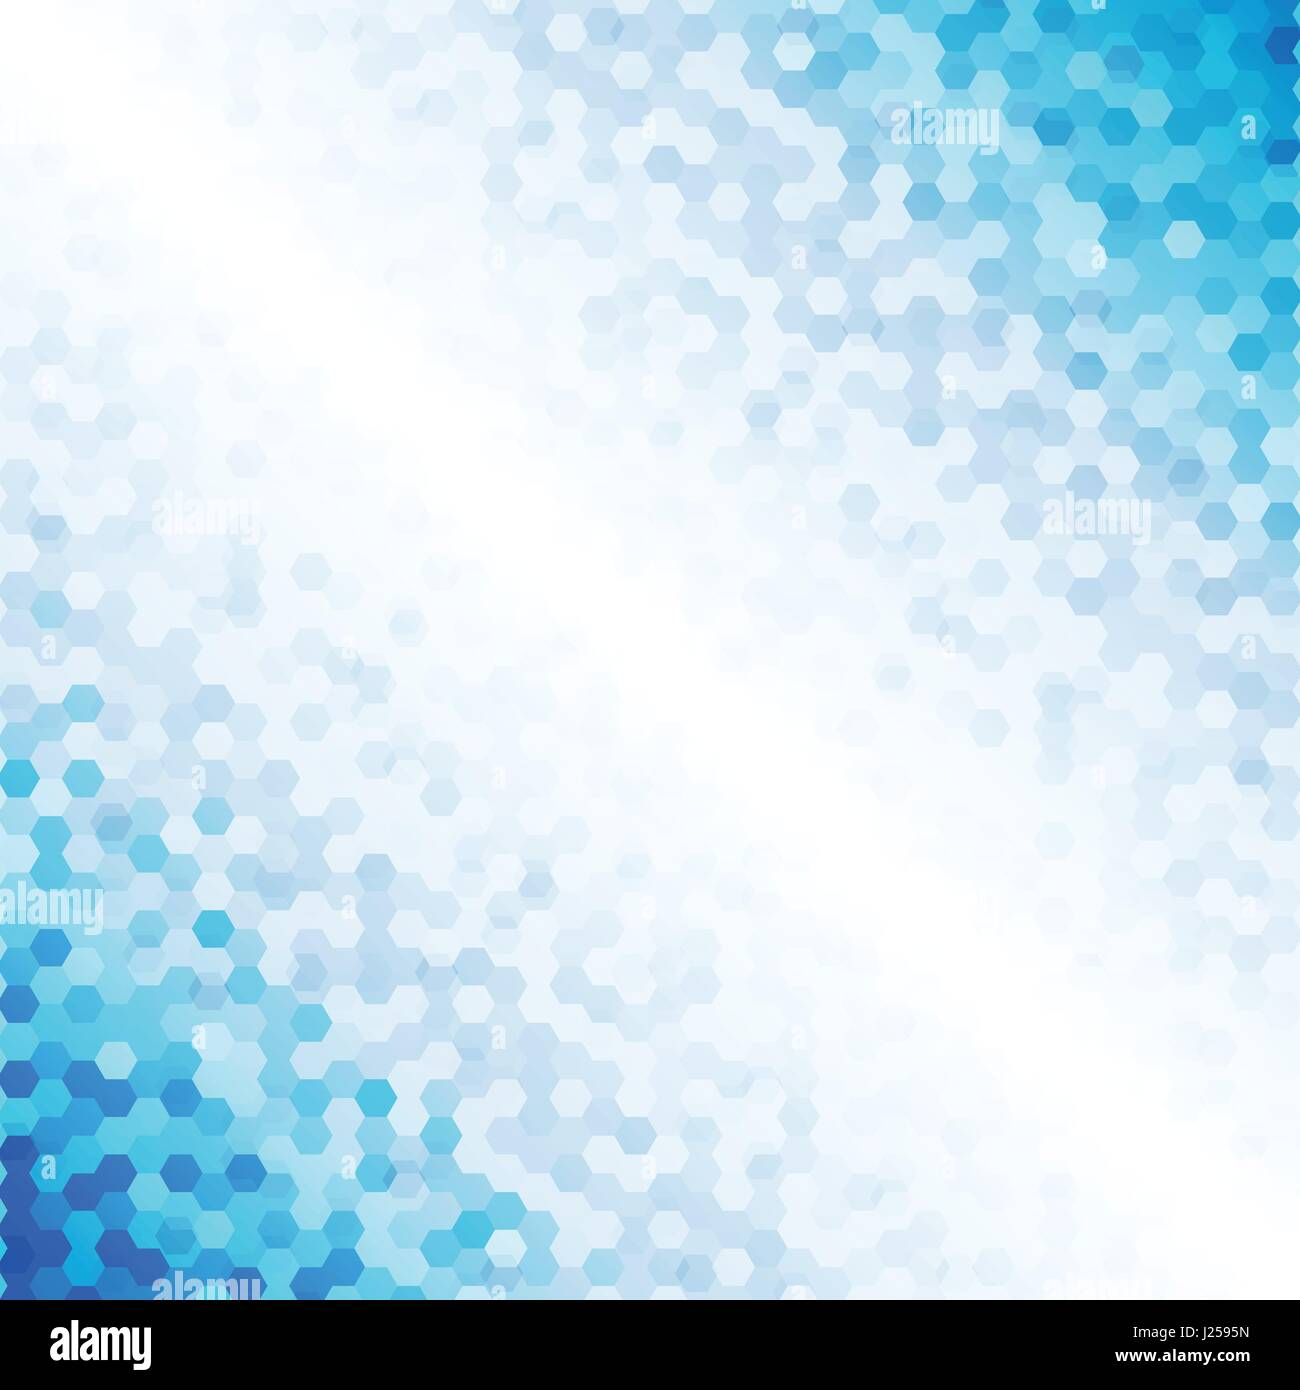 Shades Of Blue Design | Abstract Blue Metal Hexagon Background Stock Vector Images Alamy